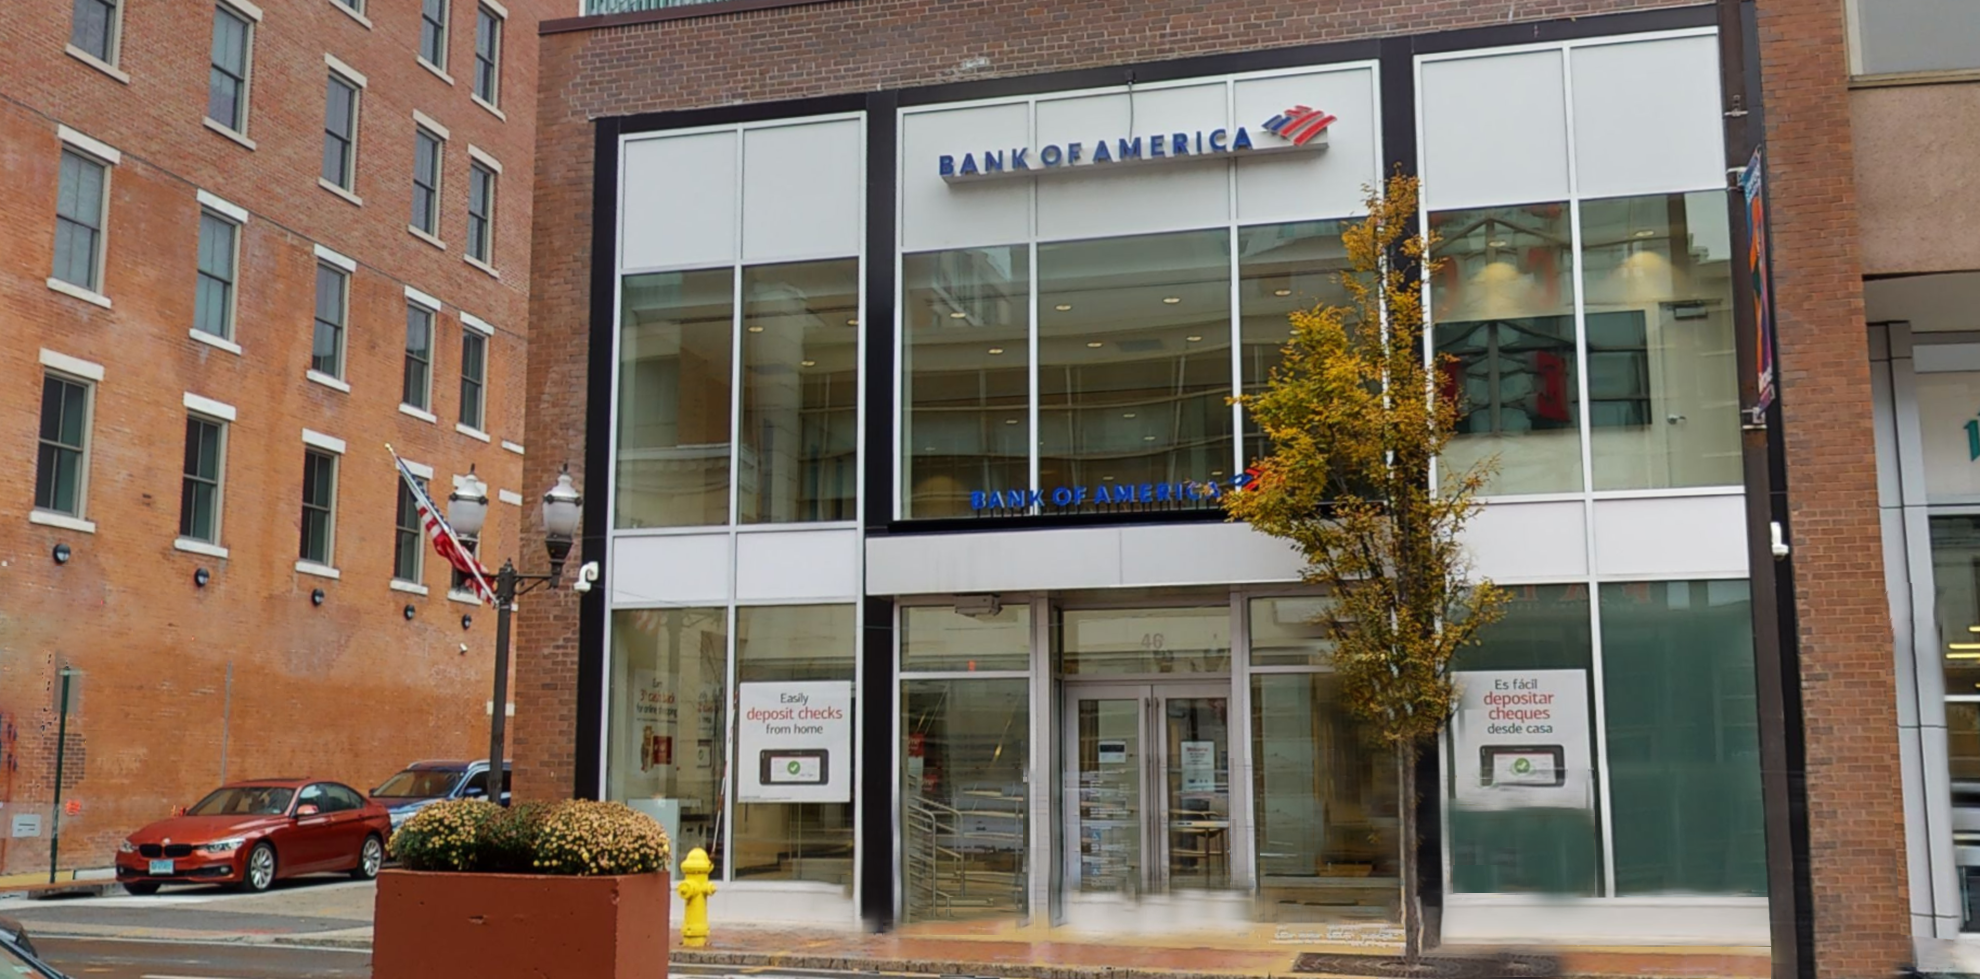 Bank of America financial center with walk-up ATM   46 Atlantic St, Stamford, CT 06901